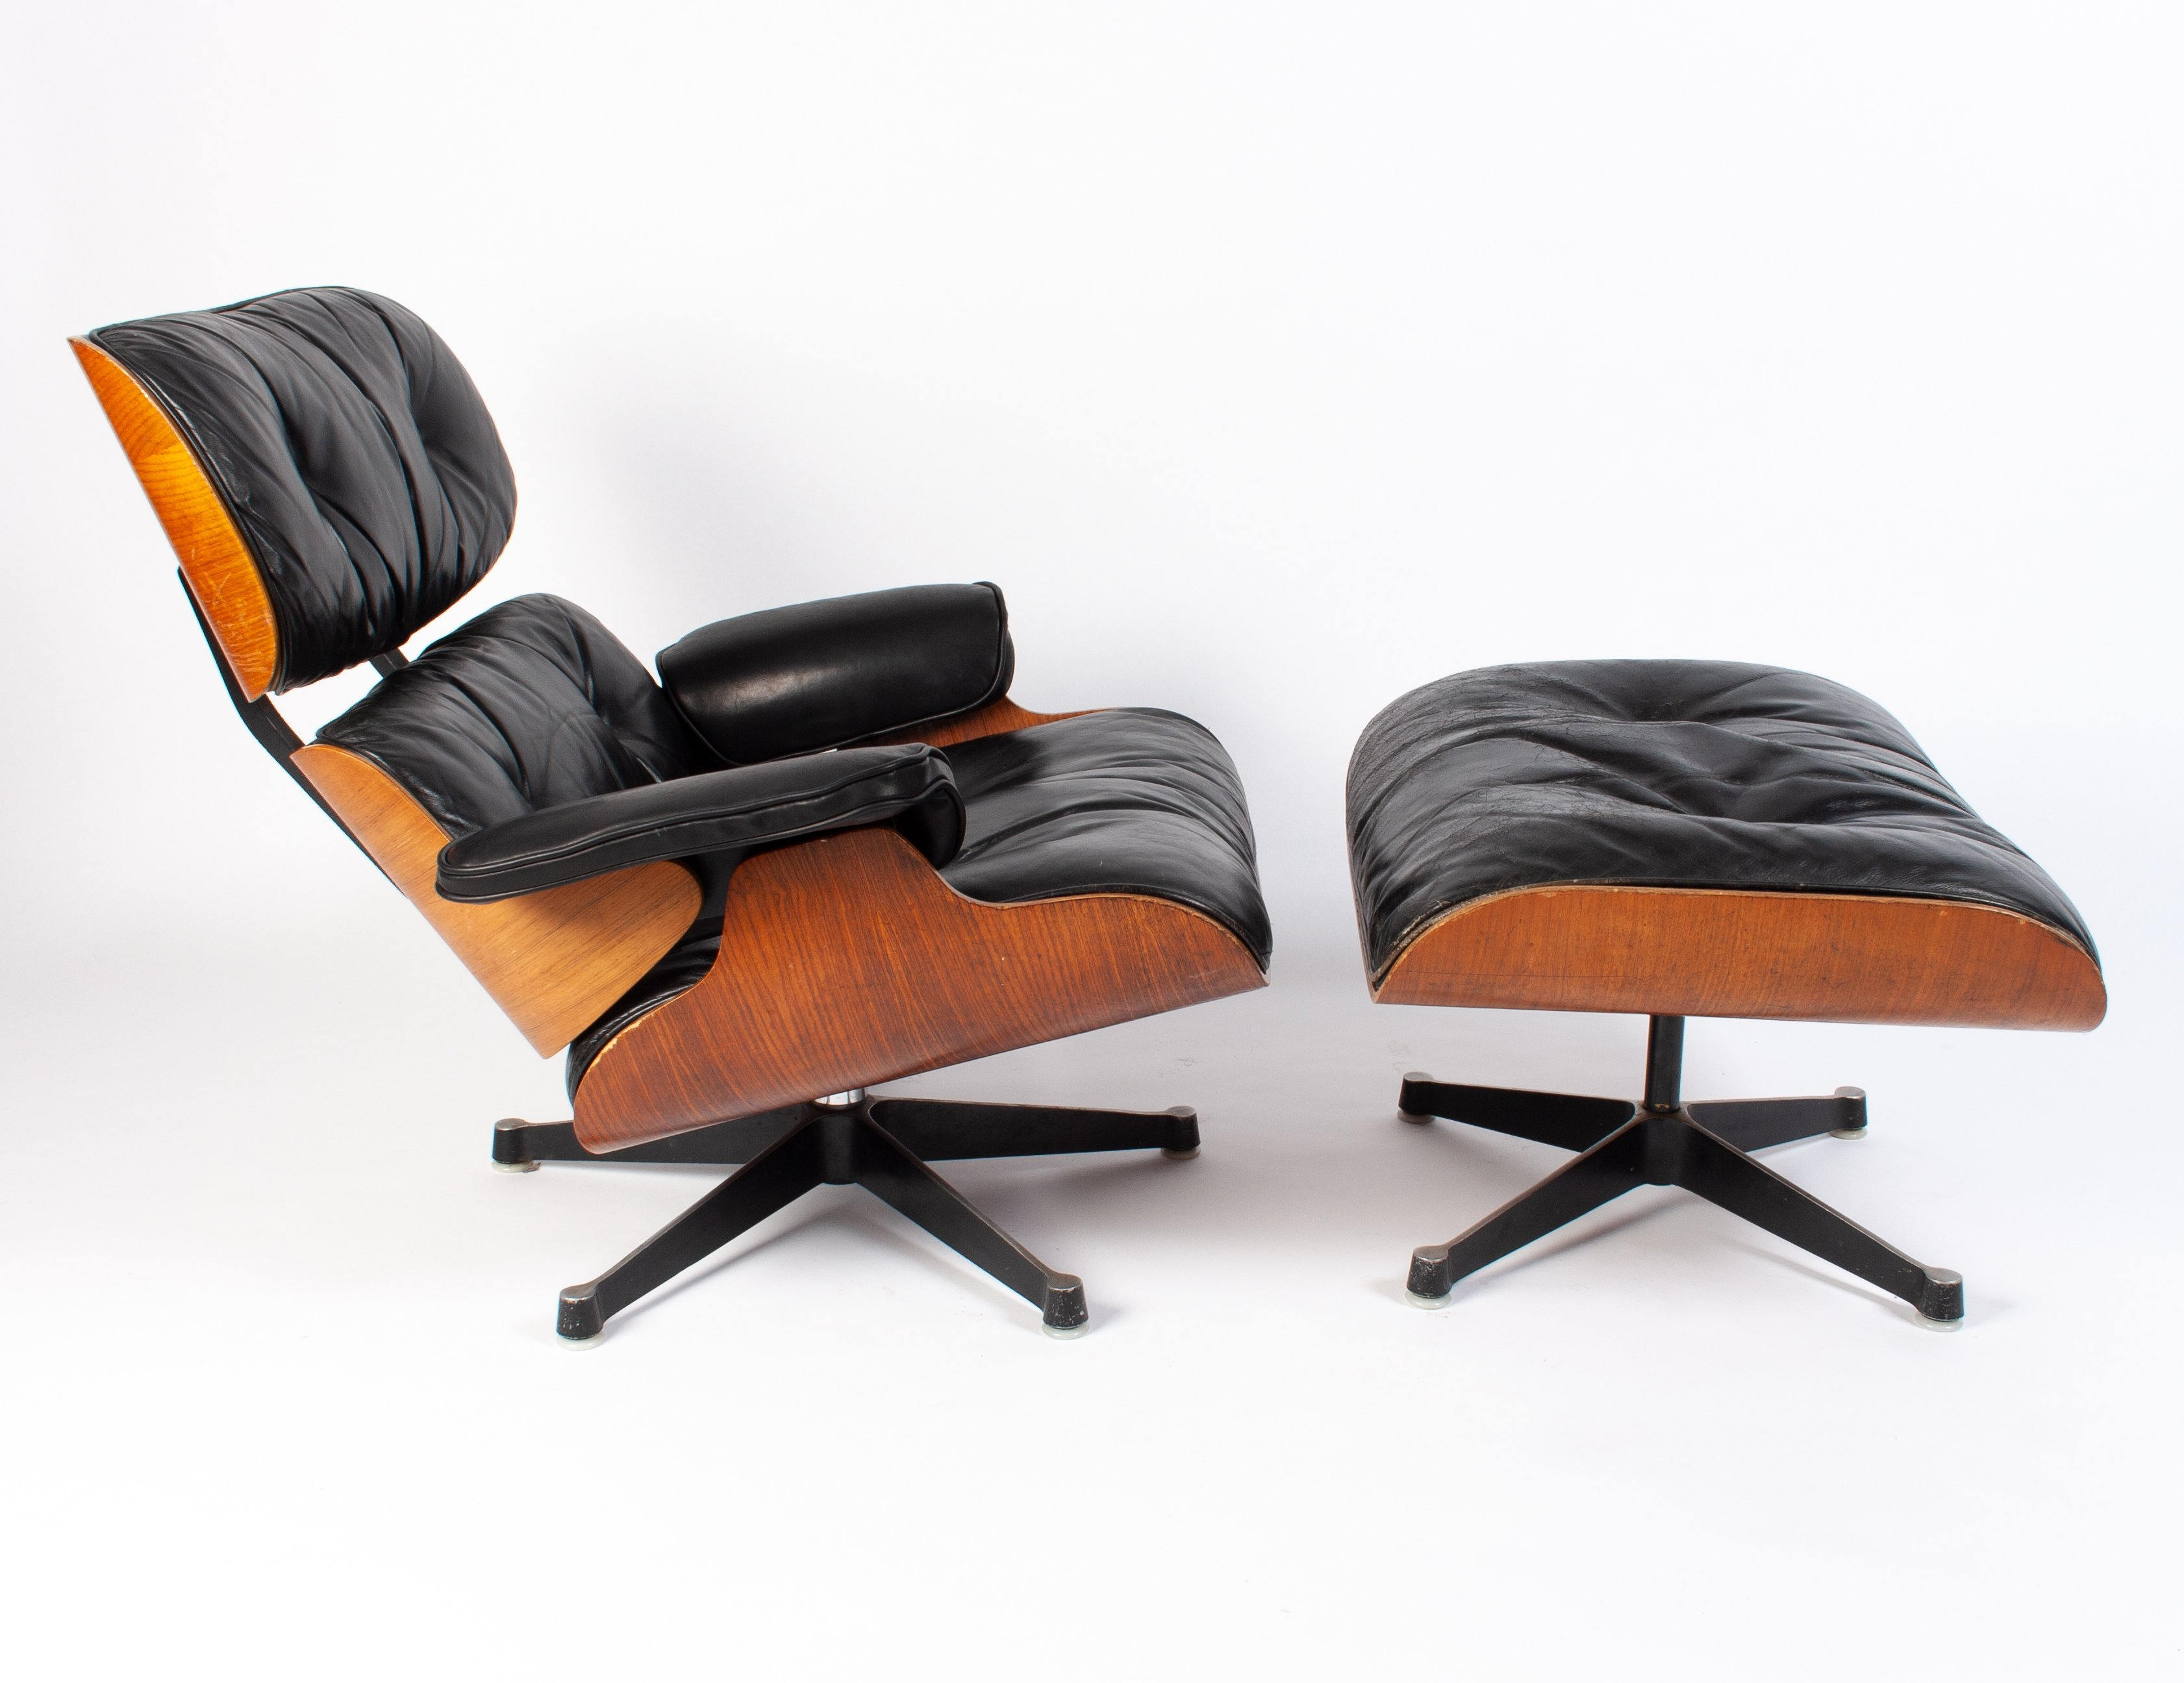 Awe Inspiring Vintage Eames Lounge Chair Ottoman For Herman Miller Beatyapartments Chair Design Images Beatyapartmentscom